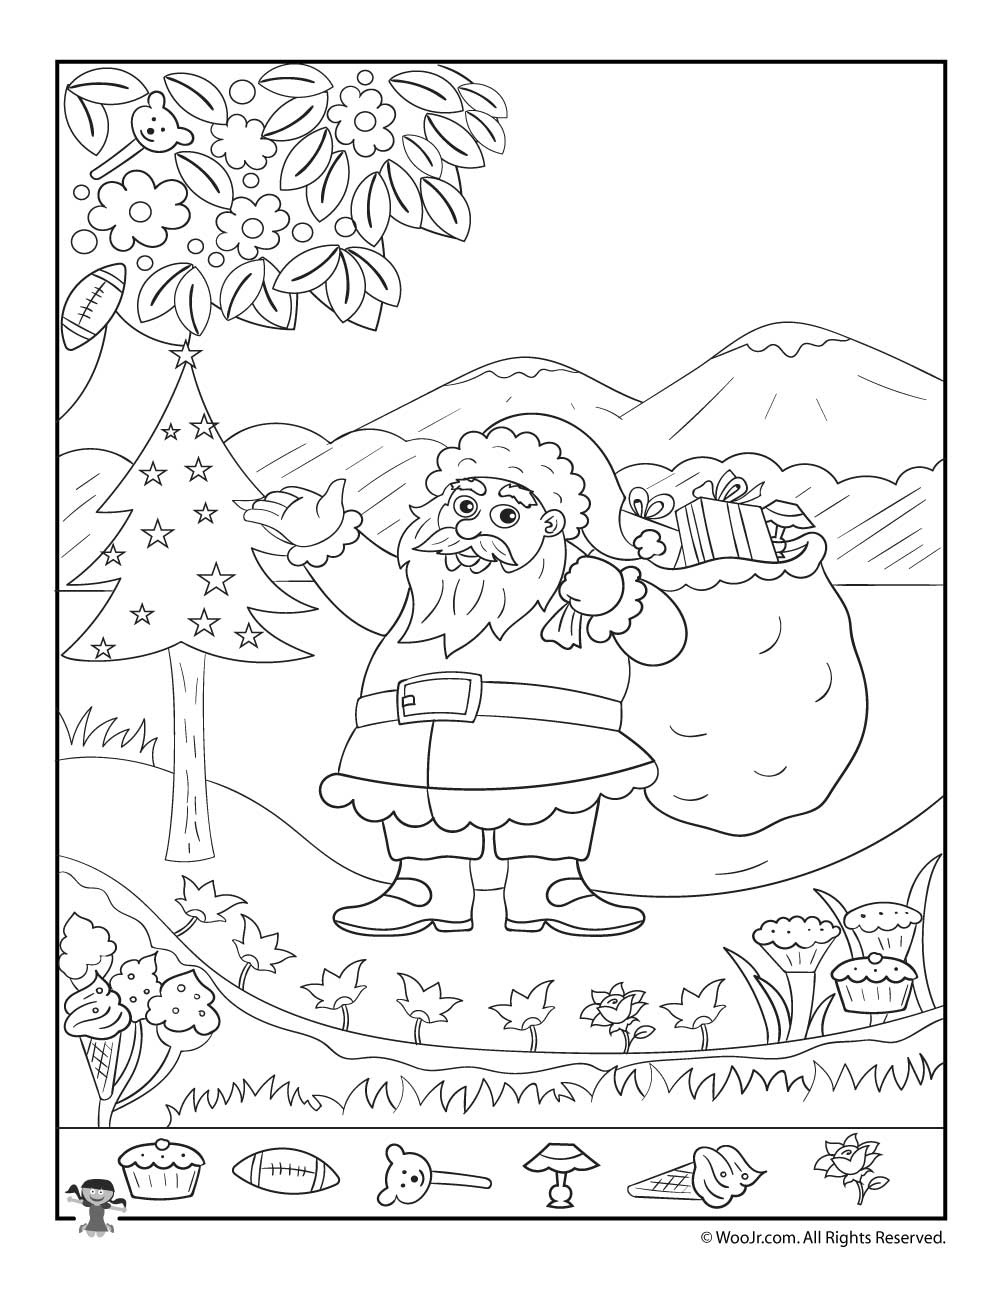 Christmas Hidden Pictures Printables For Kids   Woo! Jr. Kids Activities - Free Printable Christmas Hidden Picture Games